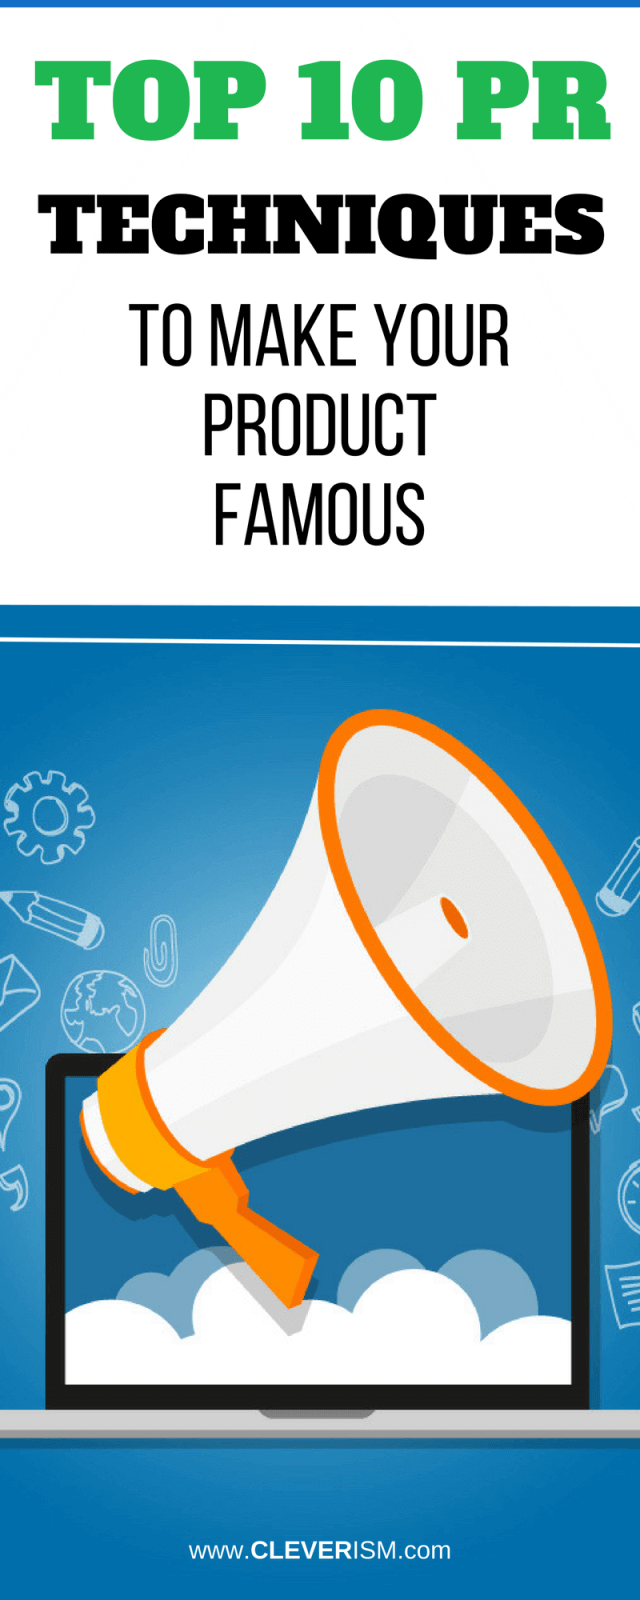 Products of famous companies before their popularity